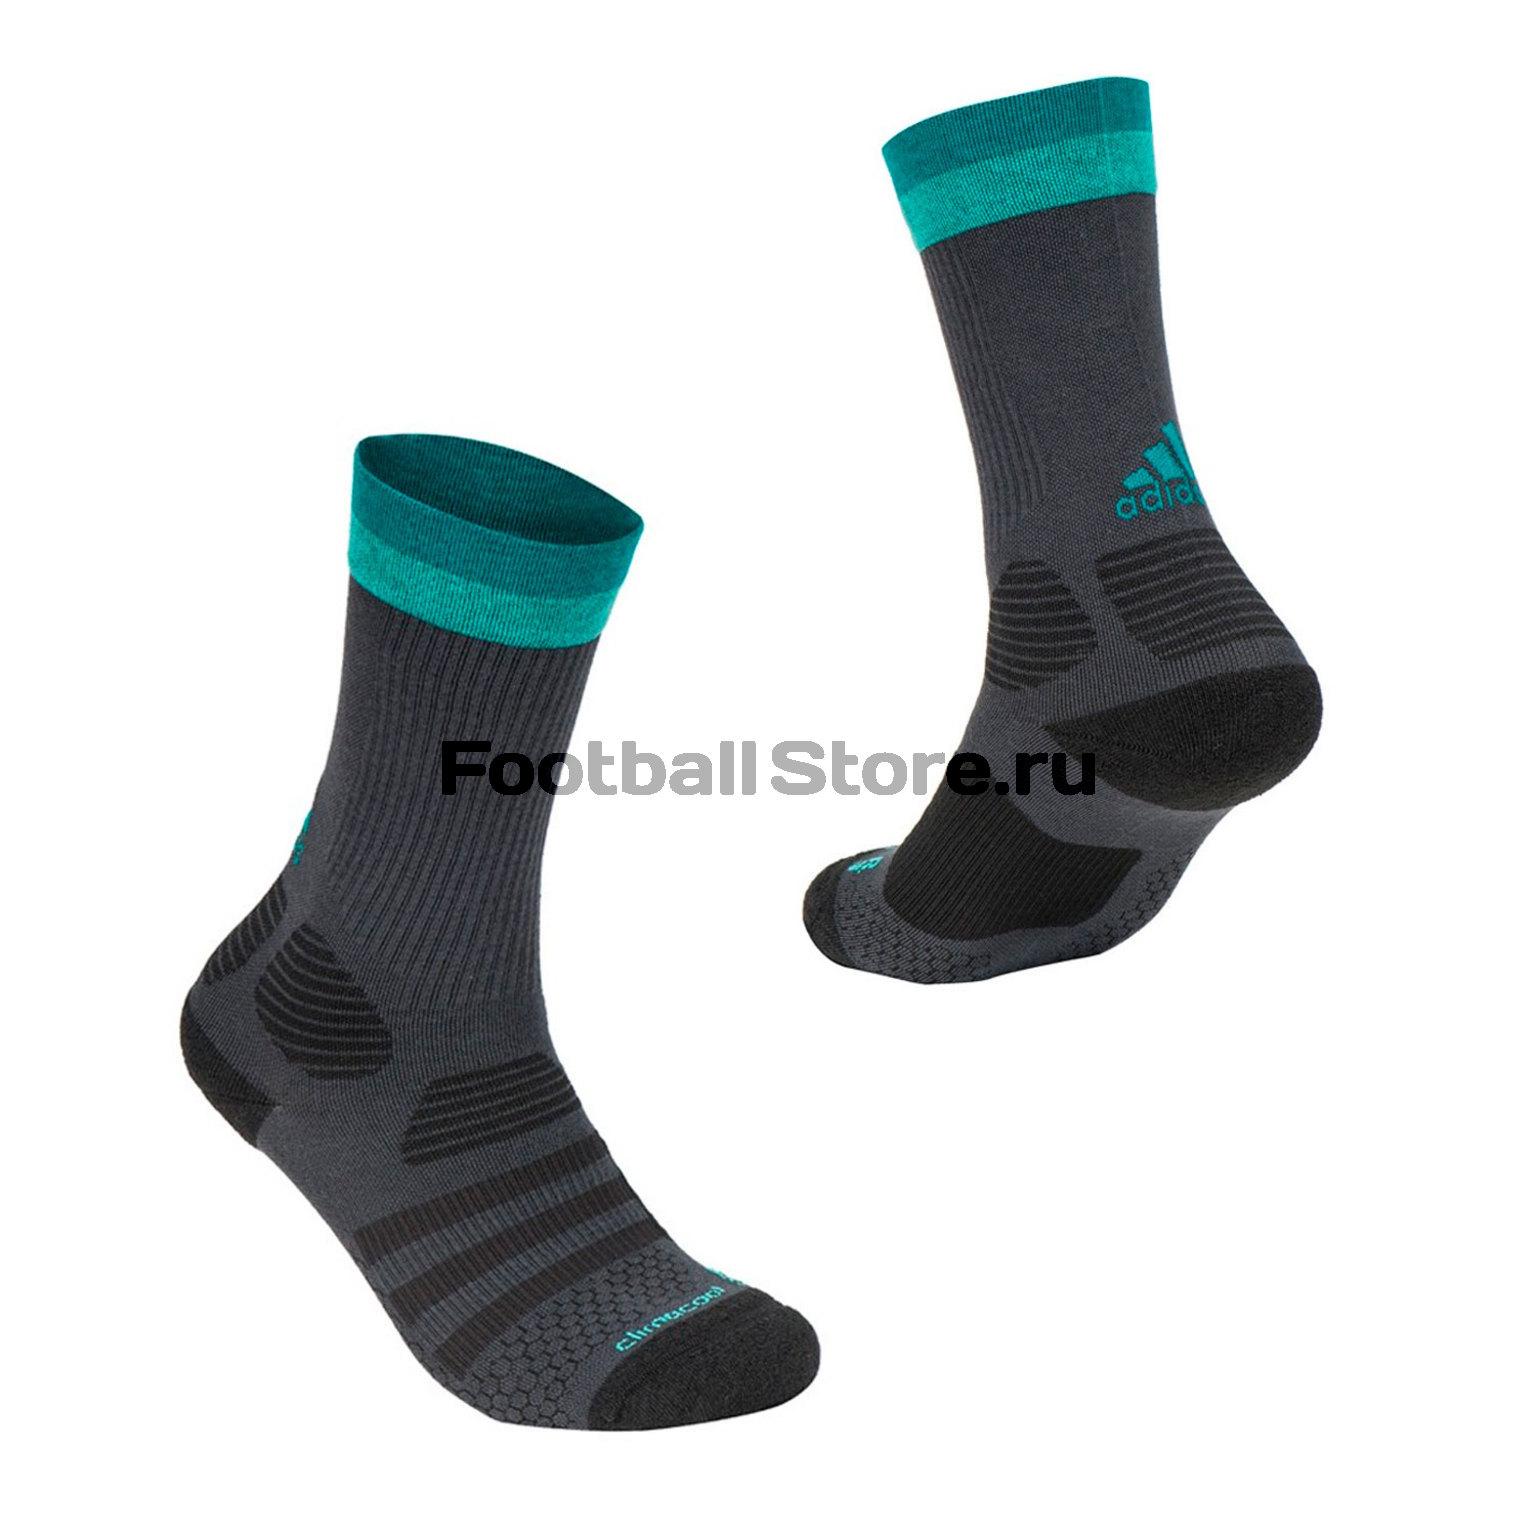 Adidas Носки Adidas ACE Socks AI3710